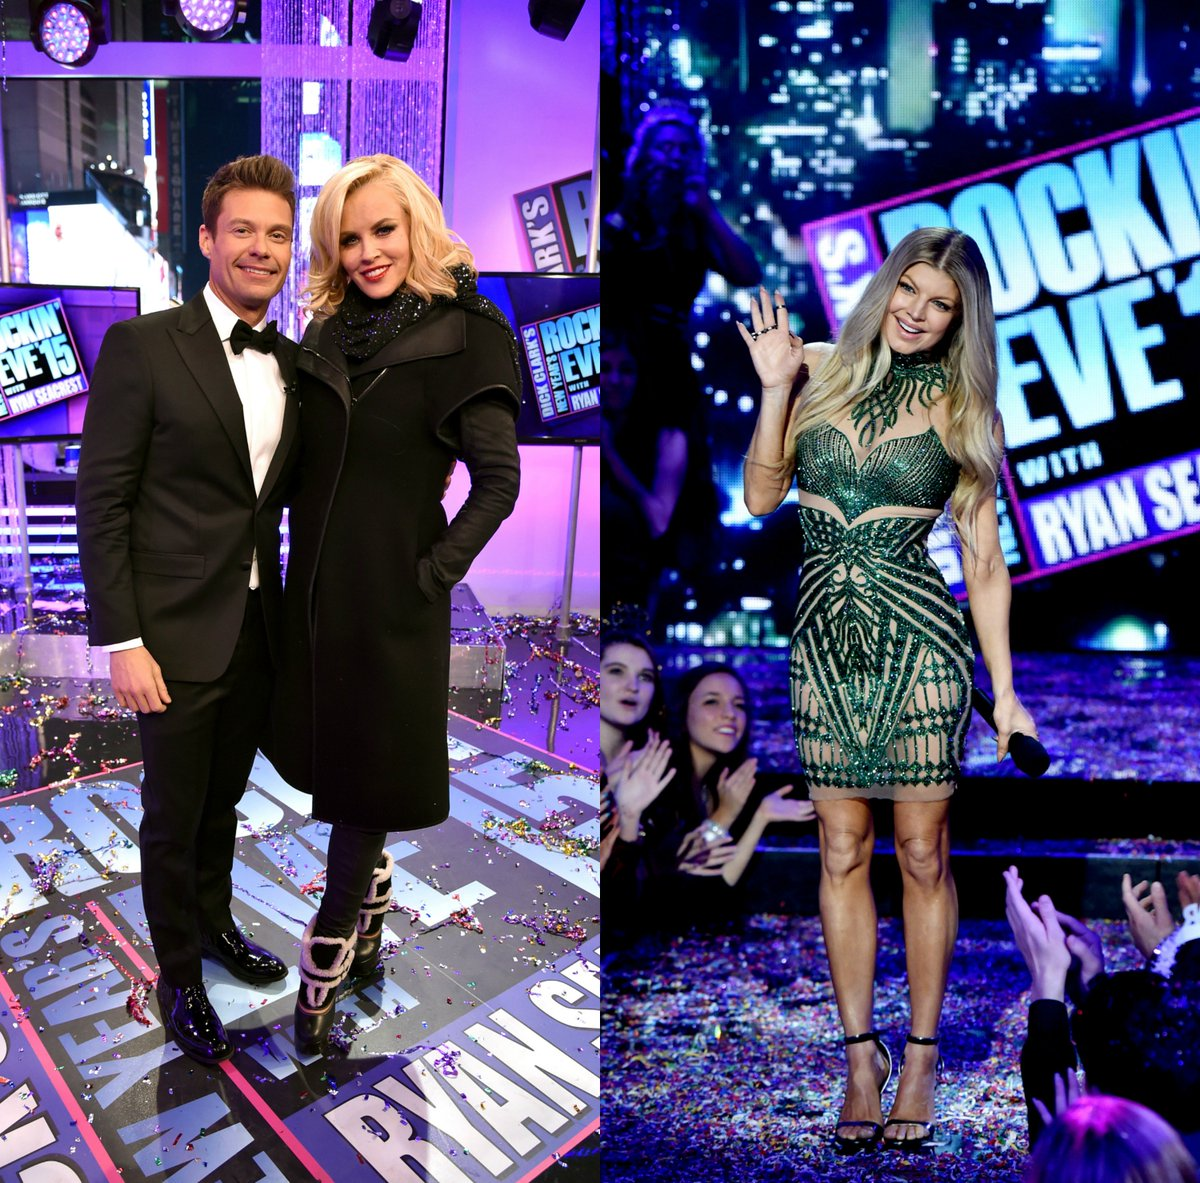 RT @OfficialNYRE: GET READY! @RyanSeacrest​, @JennyMcCarthy and @Fergie​ are back to HOST Dick Clark's New Year's #RockinEve 2016! ???? https:…